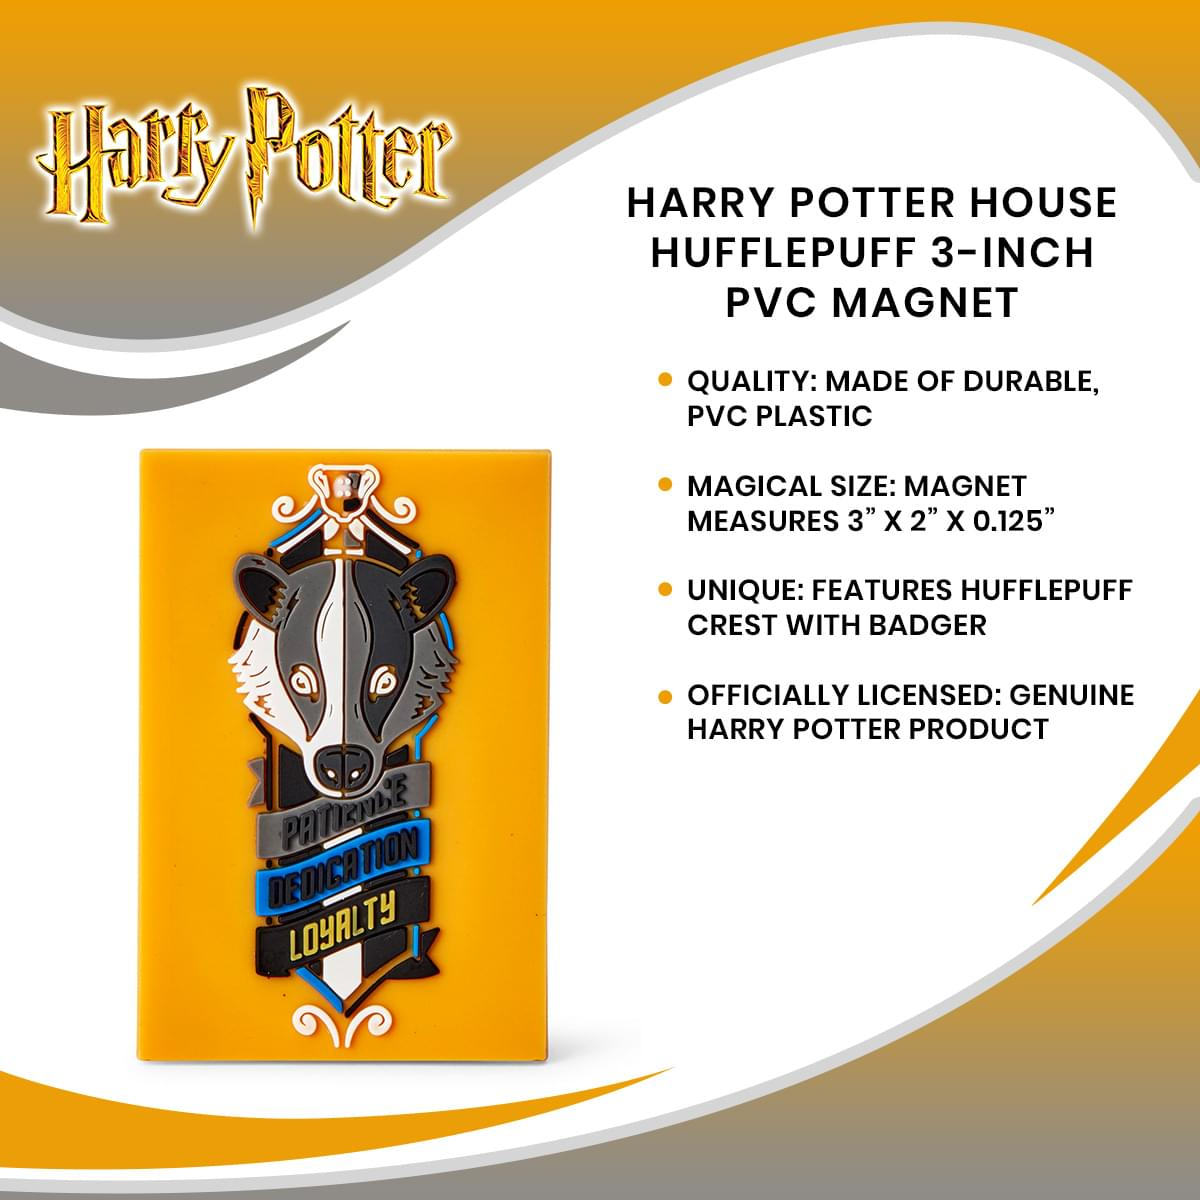 Harry Potter House Hufflepuff 3-Inch PVC Magnet